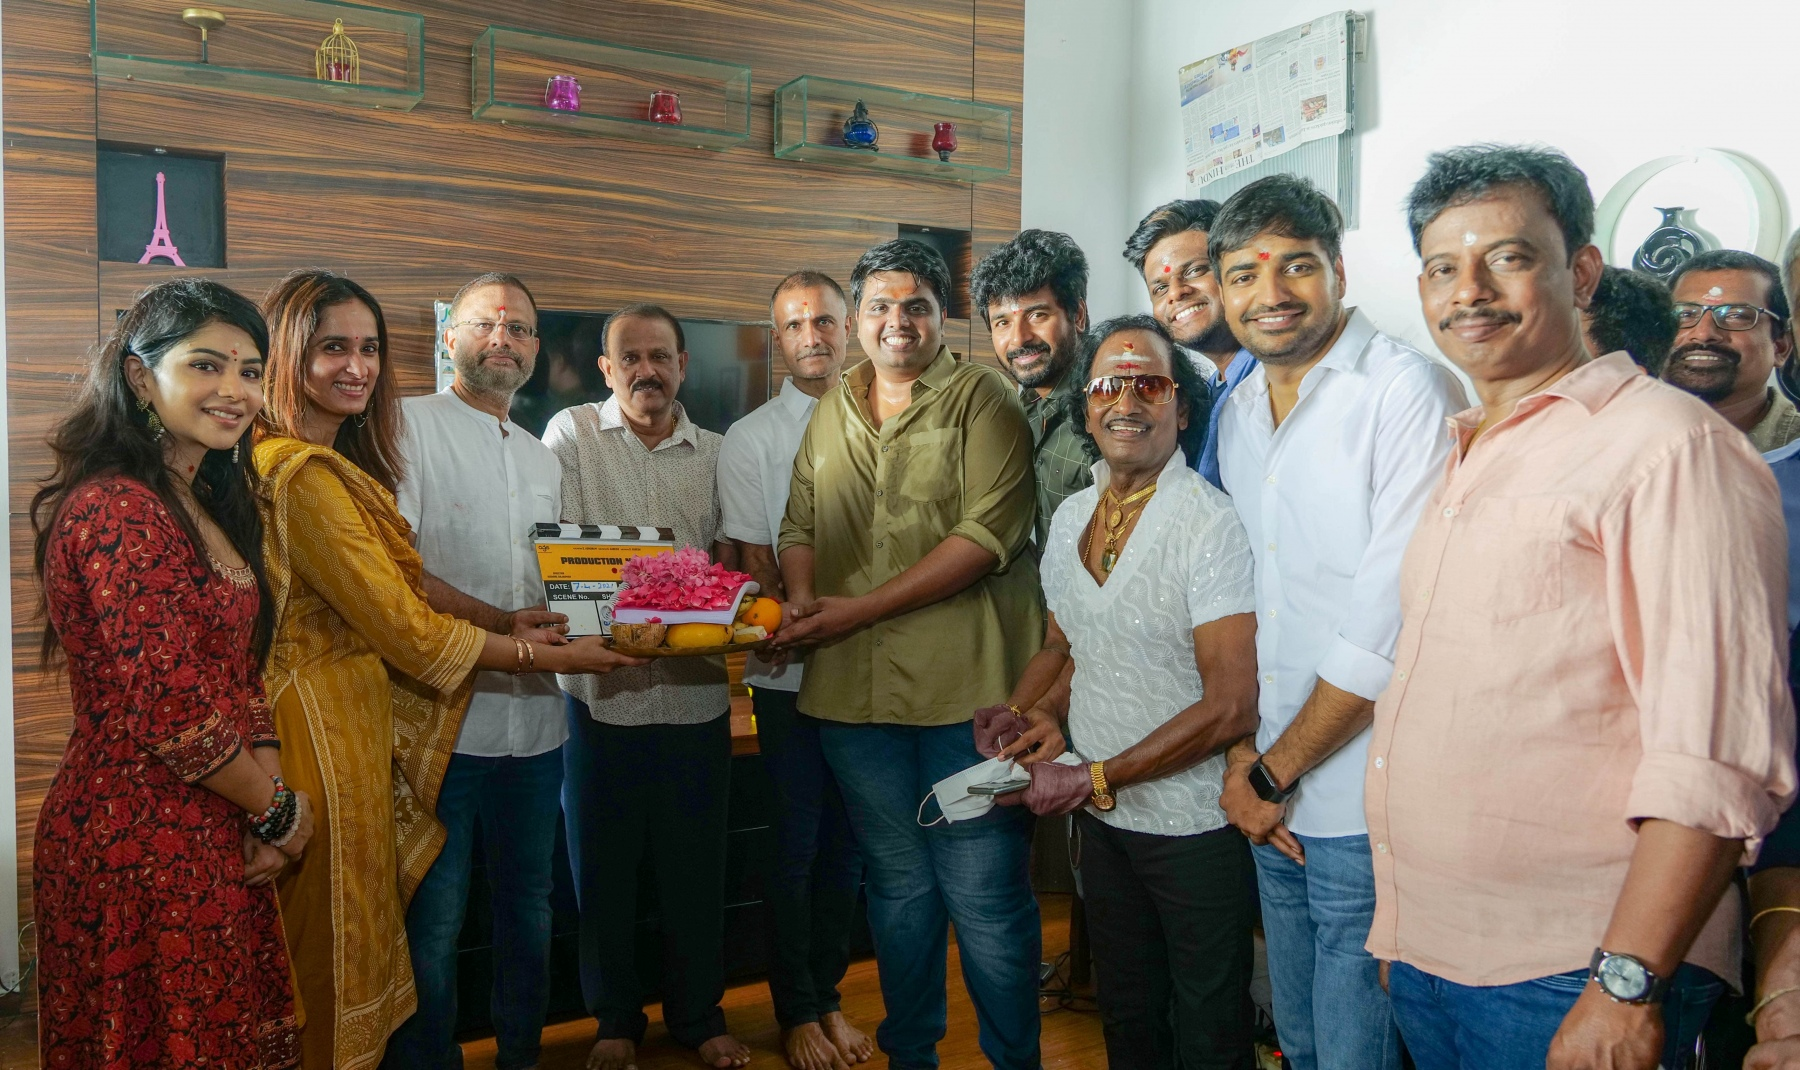 ags-new-film-launch-27